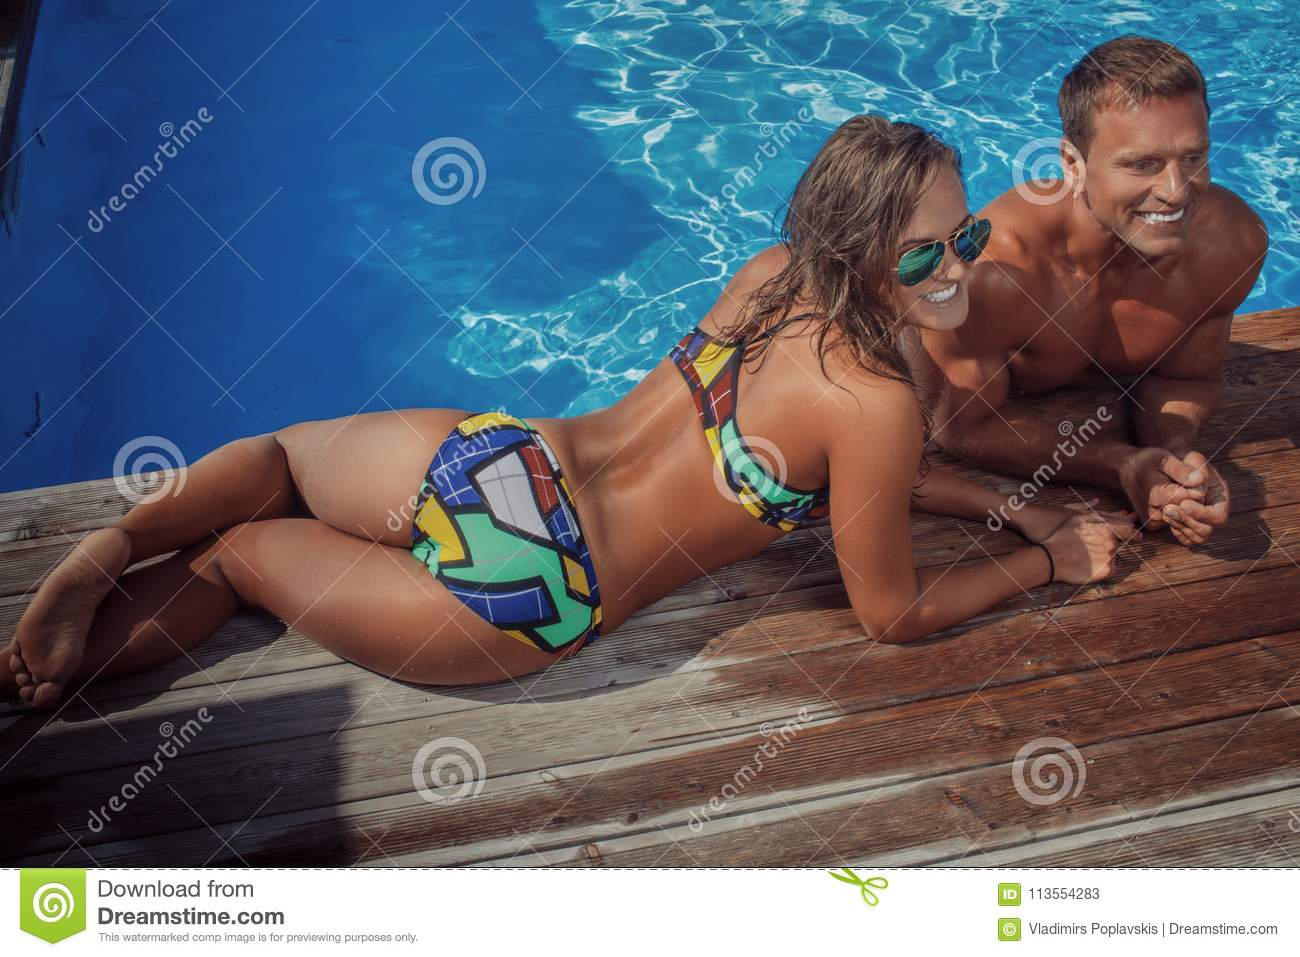 attractive-couple-handsome-muscular-male-sexy-woman-relaxing-near-pool-swimming-enjoying-vacation-women-113554283.jpg